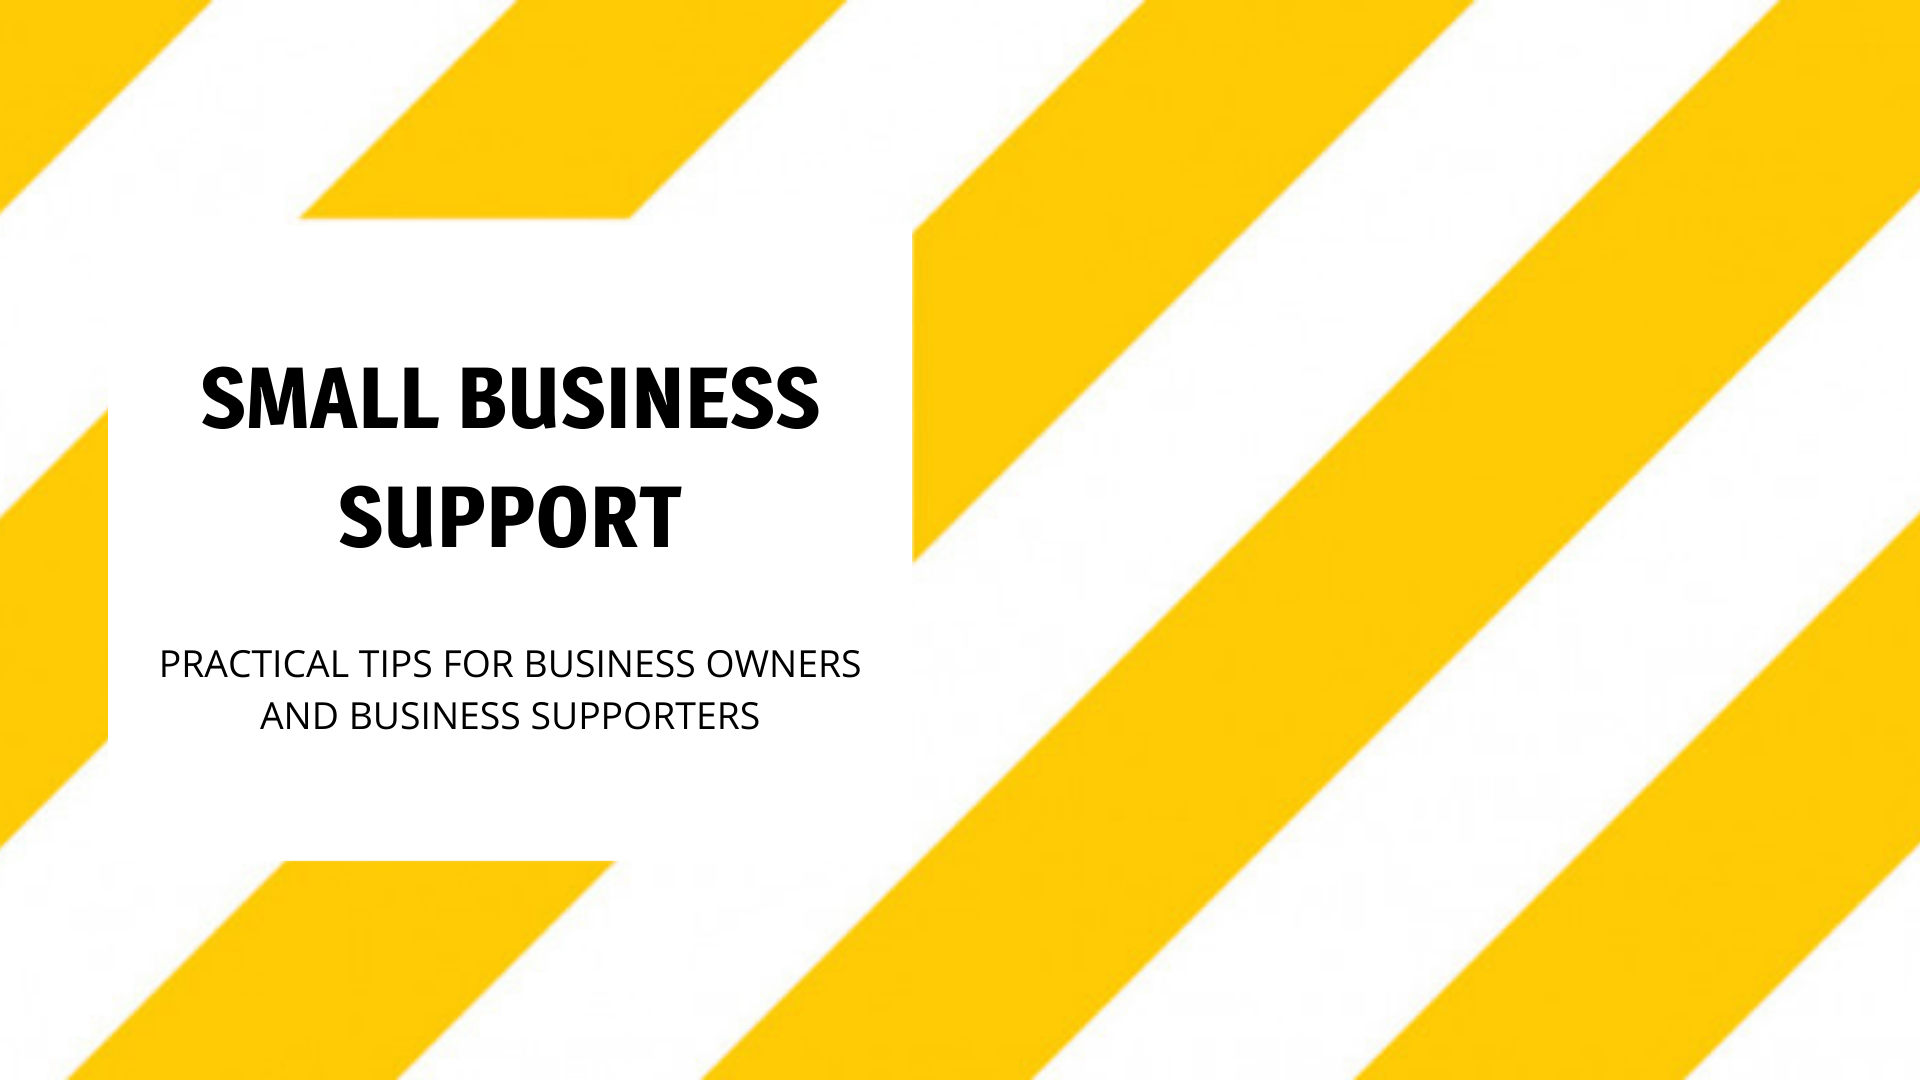 NZ Small Business Covid Support